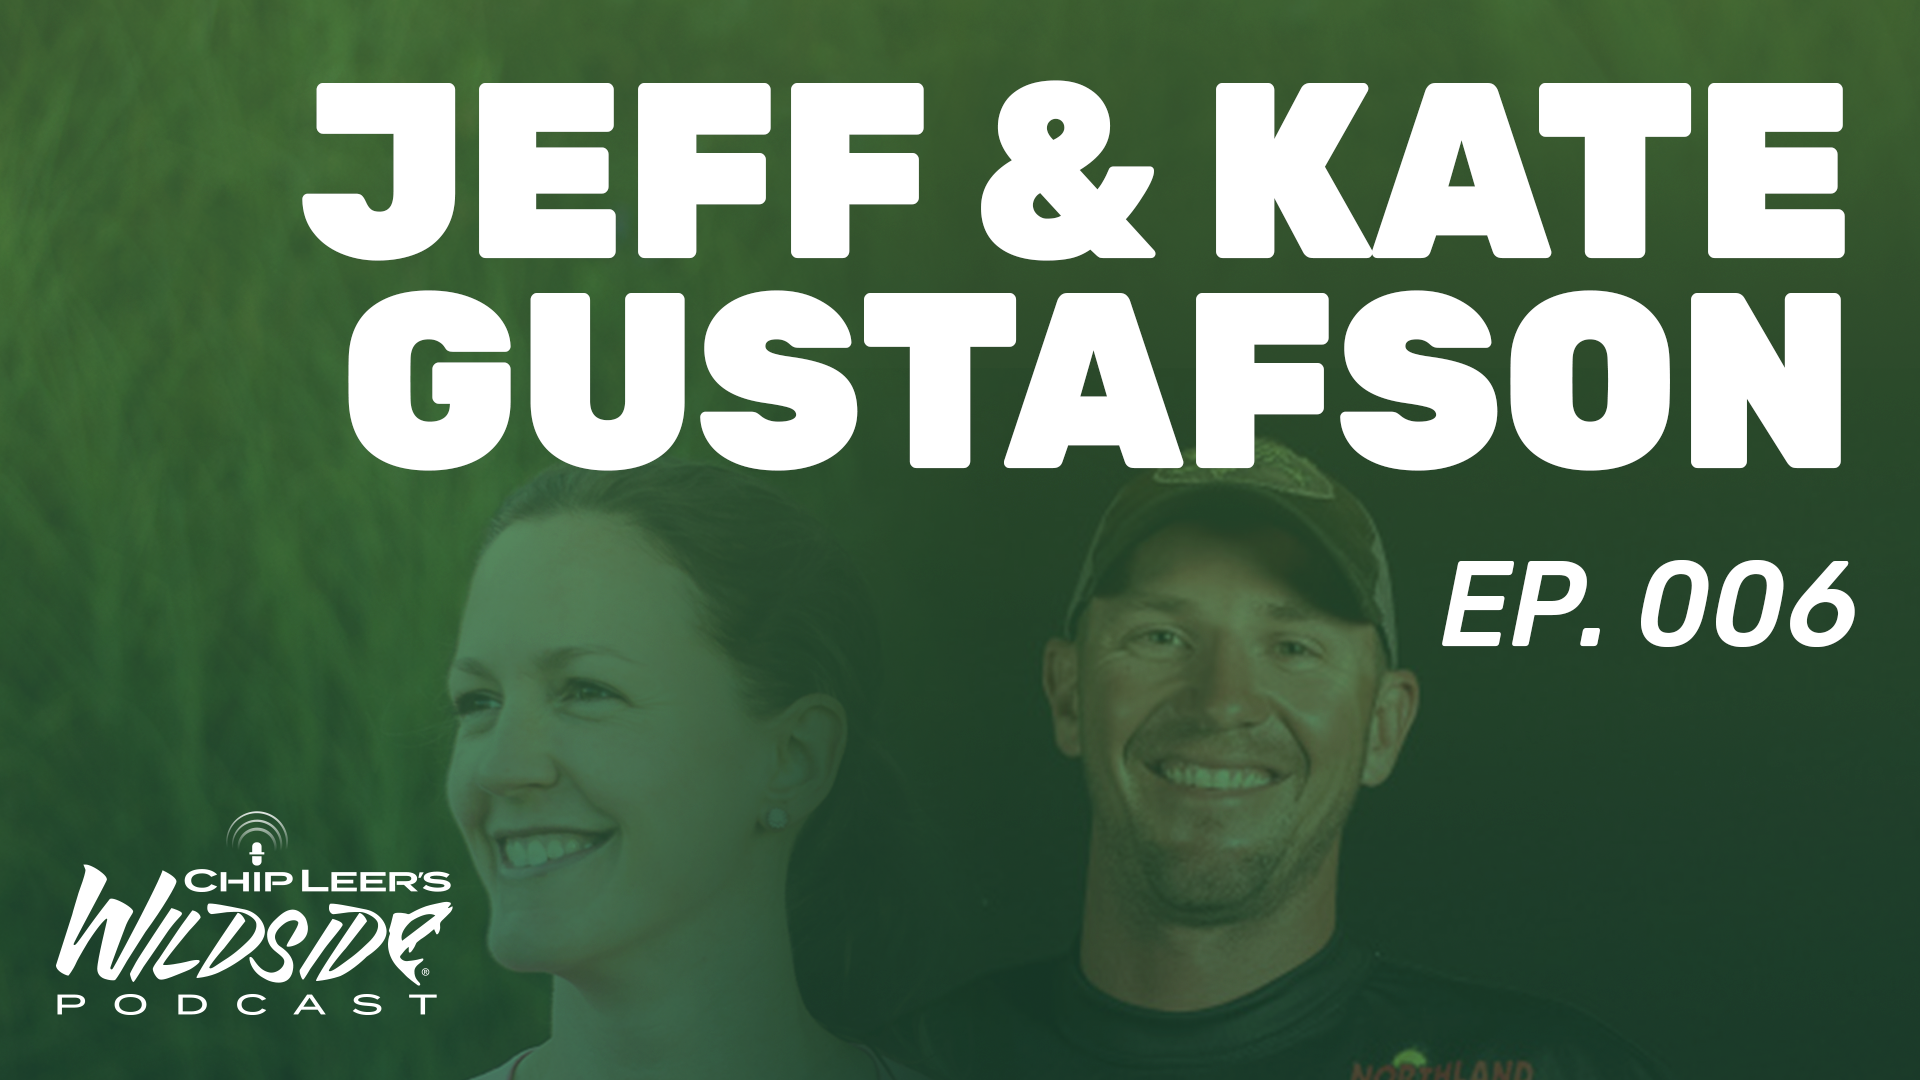 Jeff and Kate Gustafson podcast cover